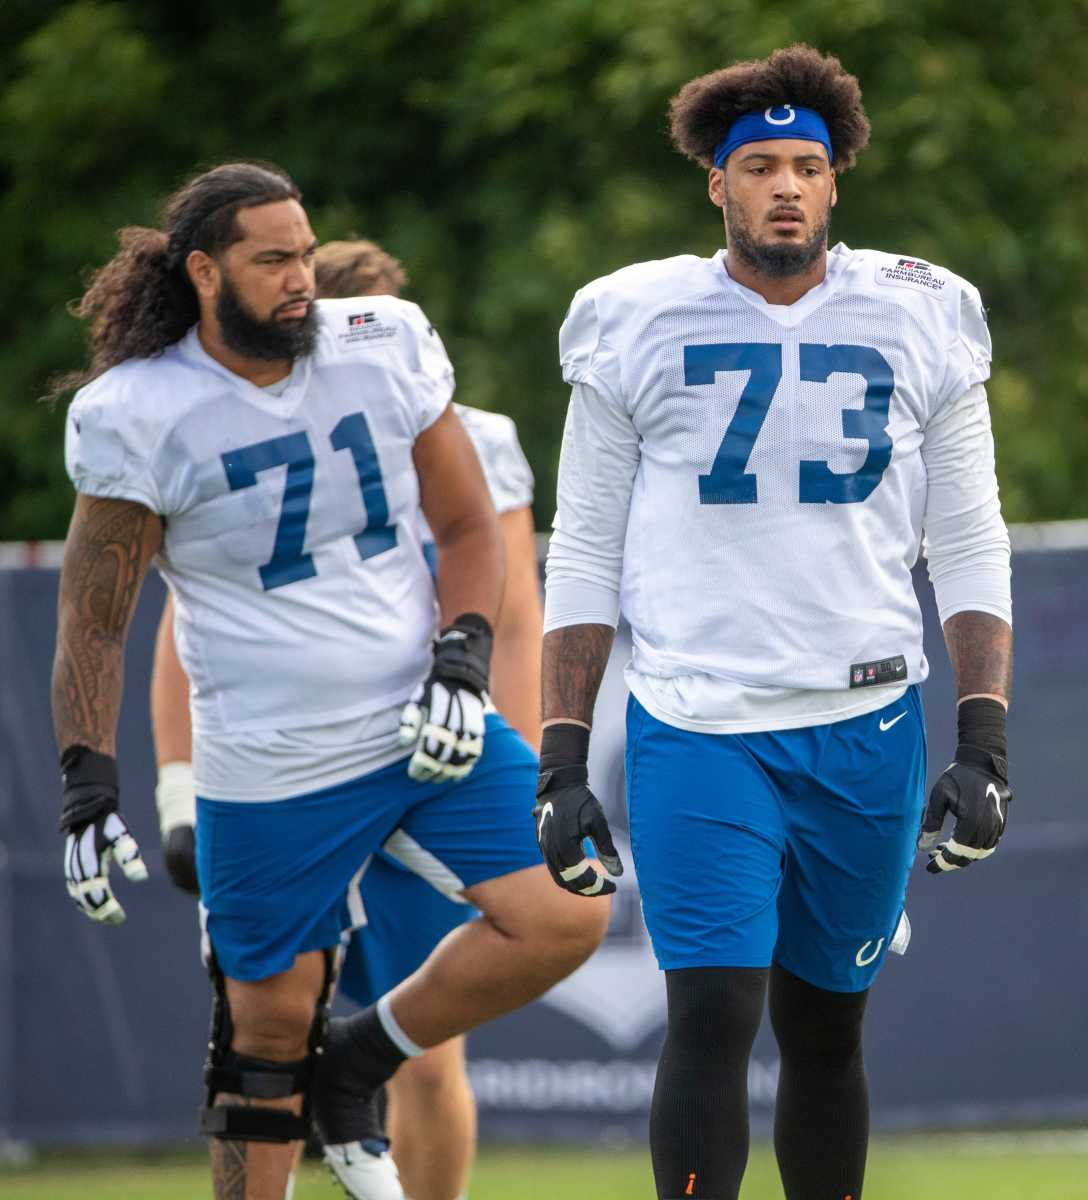 Indianapolis Colts offensive tackle Sam Tevi (71) and Indianapolis Colts offensive tackle Julien Davenport (73) at Grand Park in Westfield on Monday, August 10, 2021, on the third week of workouts of this summer's Colts training camp. Wentz Back At Colts Camp